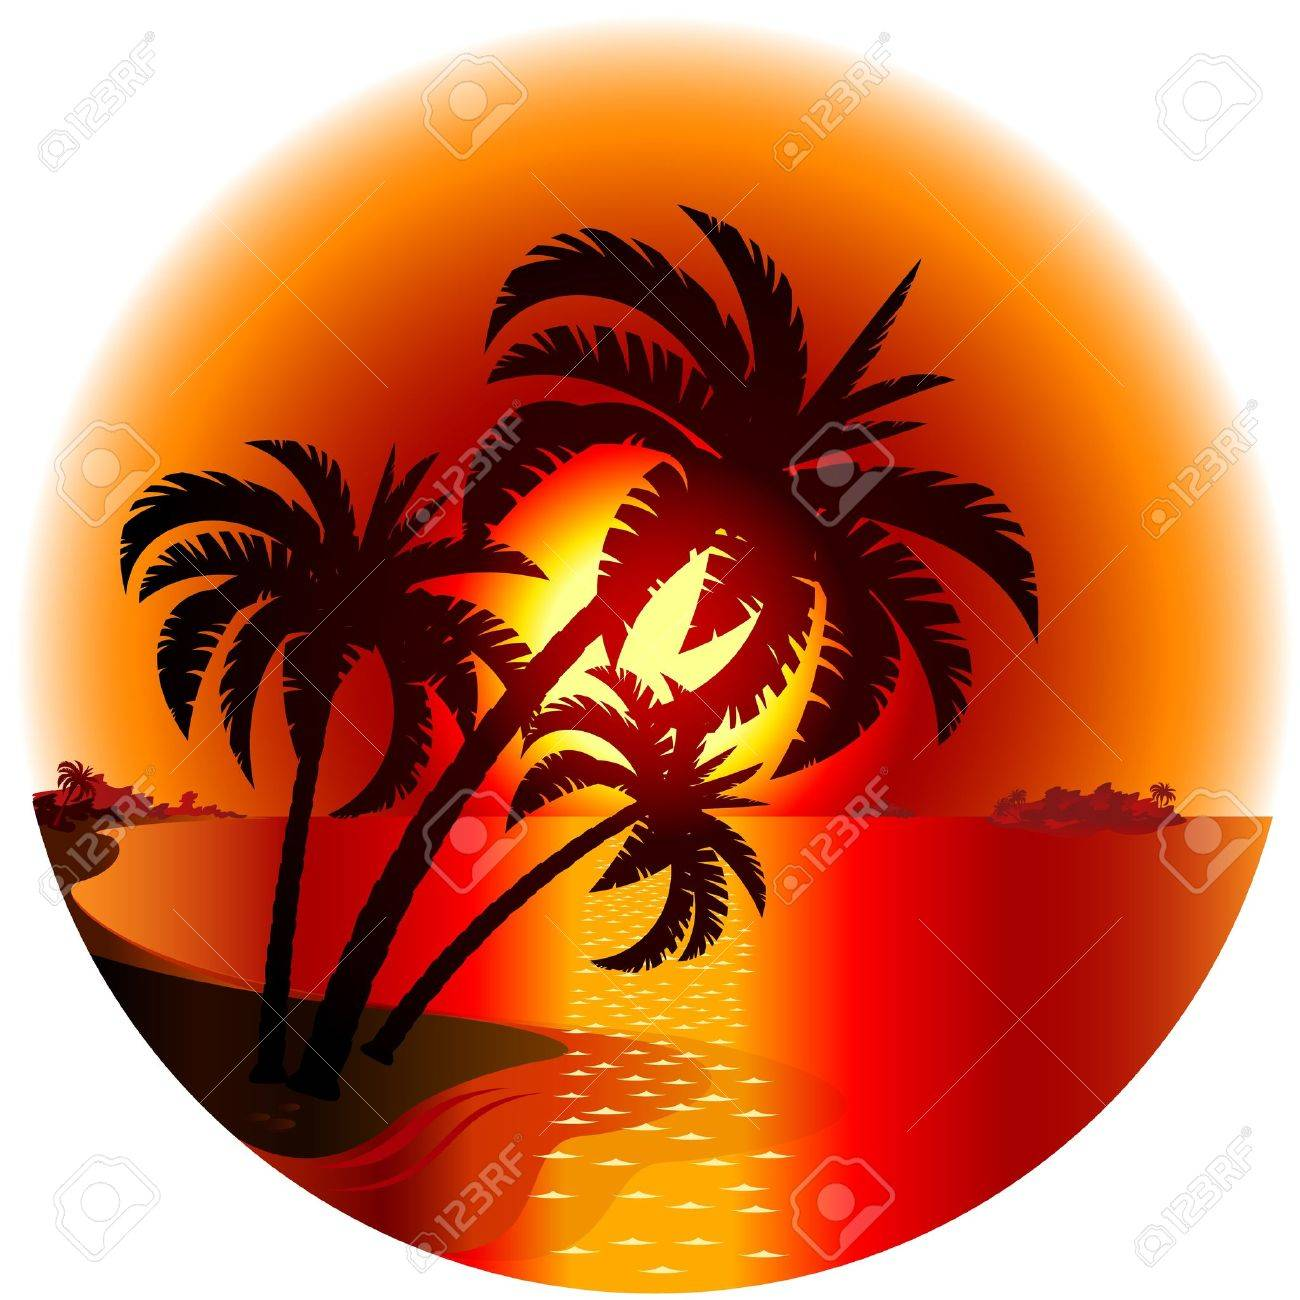 Sunset on a tropical island. Illustration on white background Stock Vector - 13180578